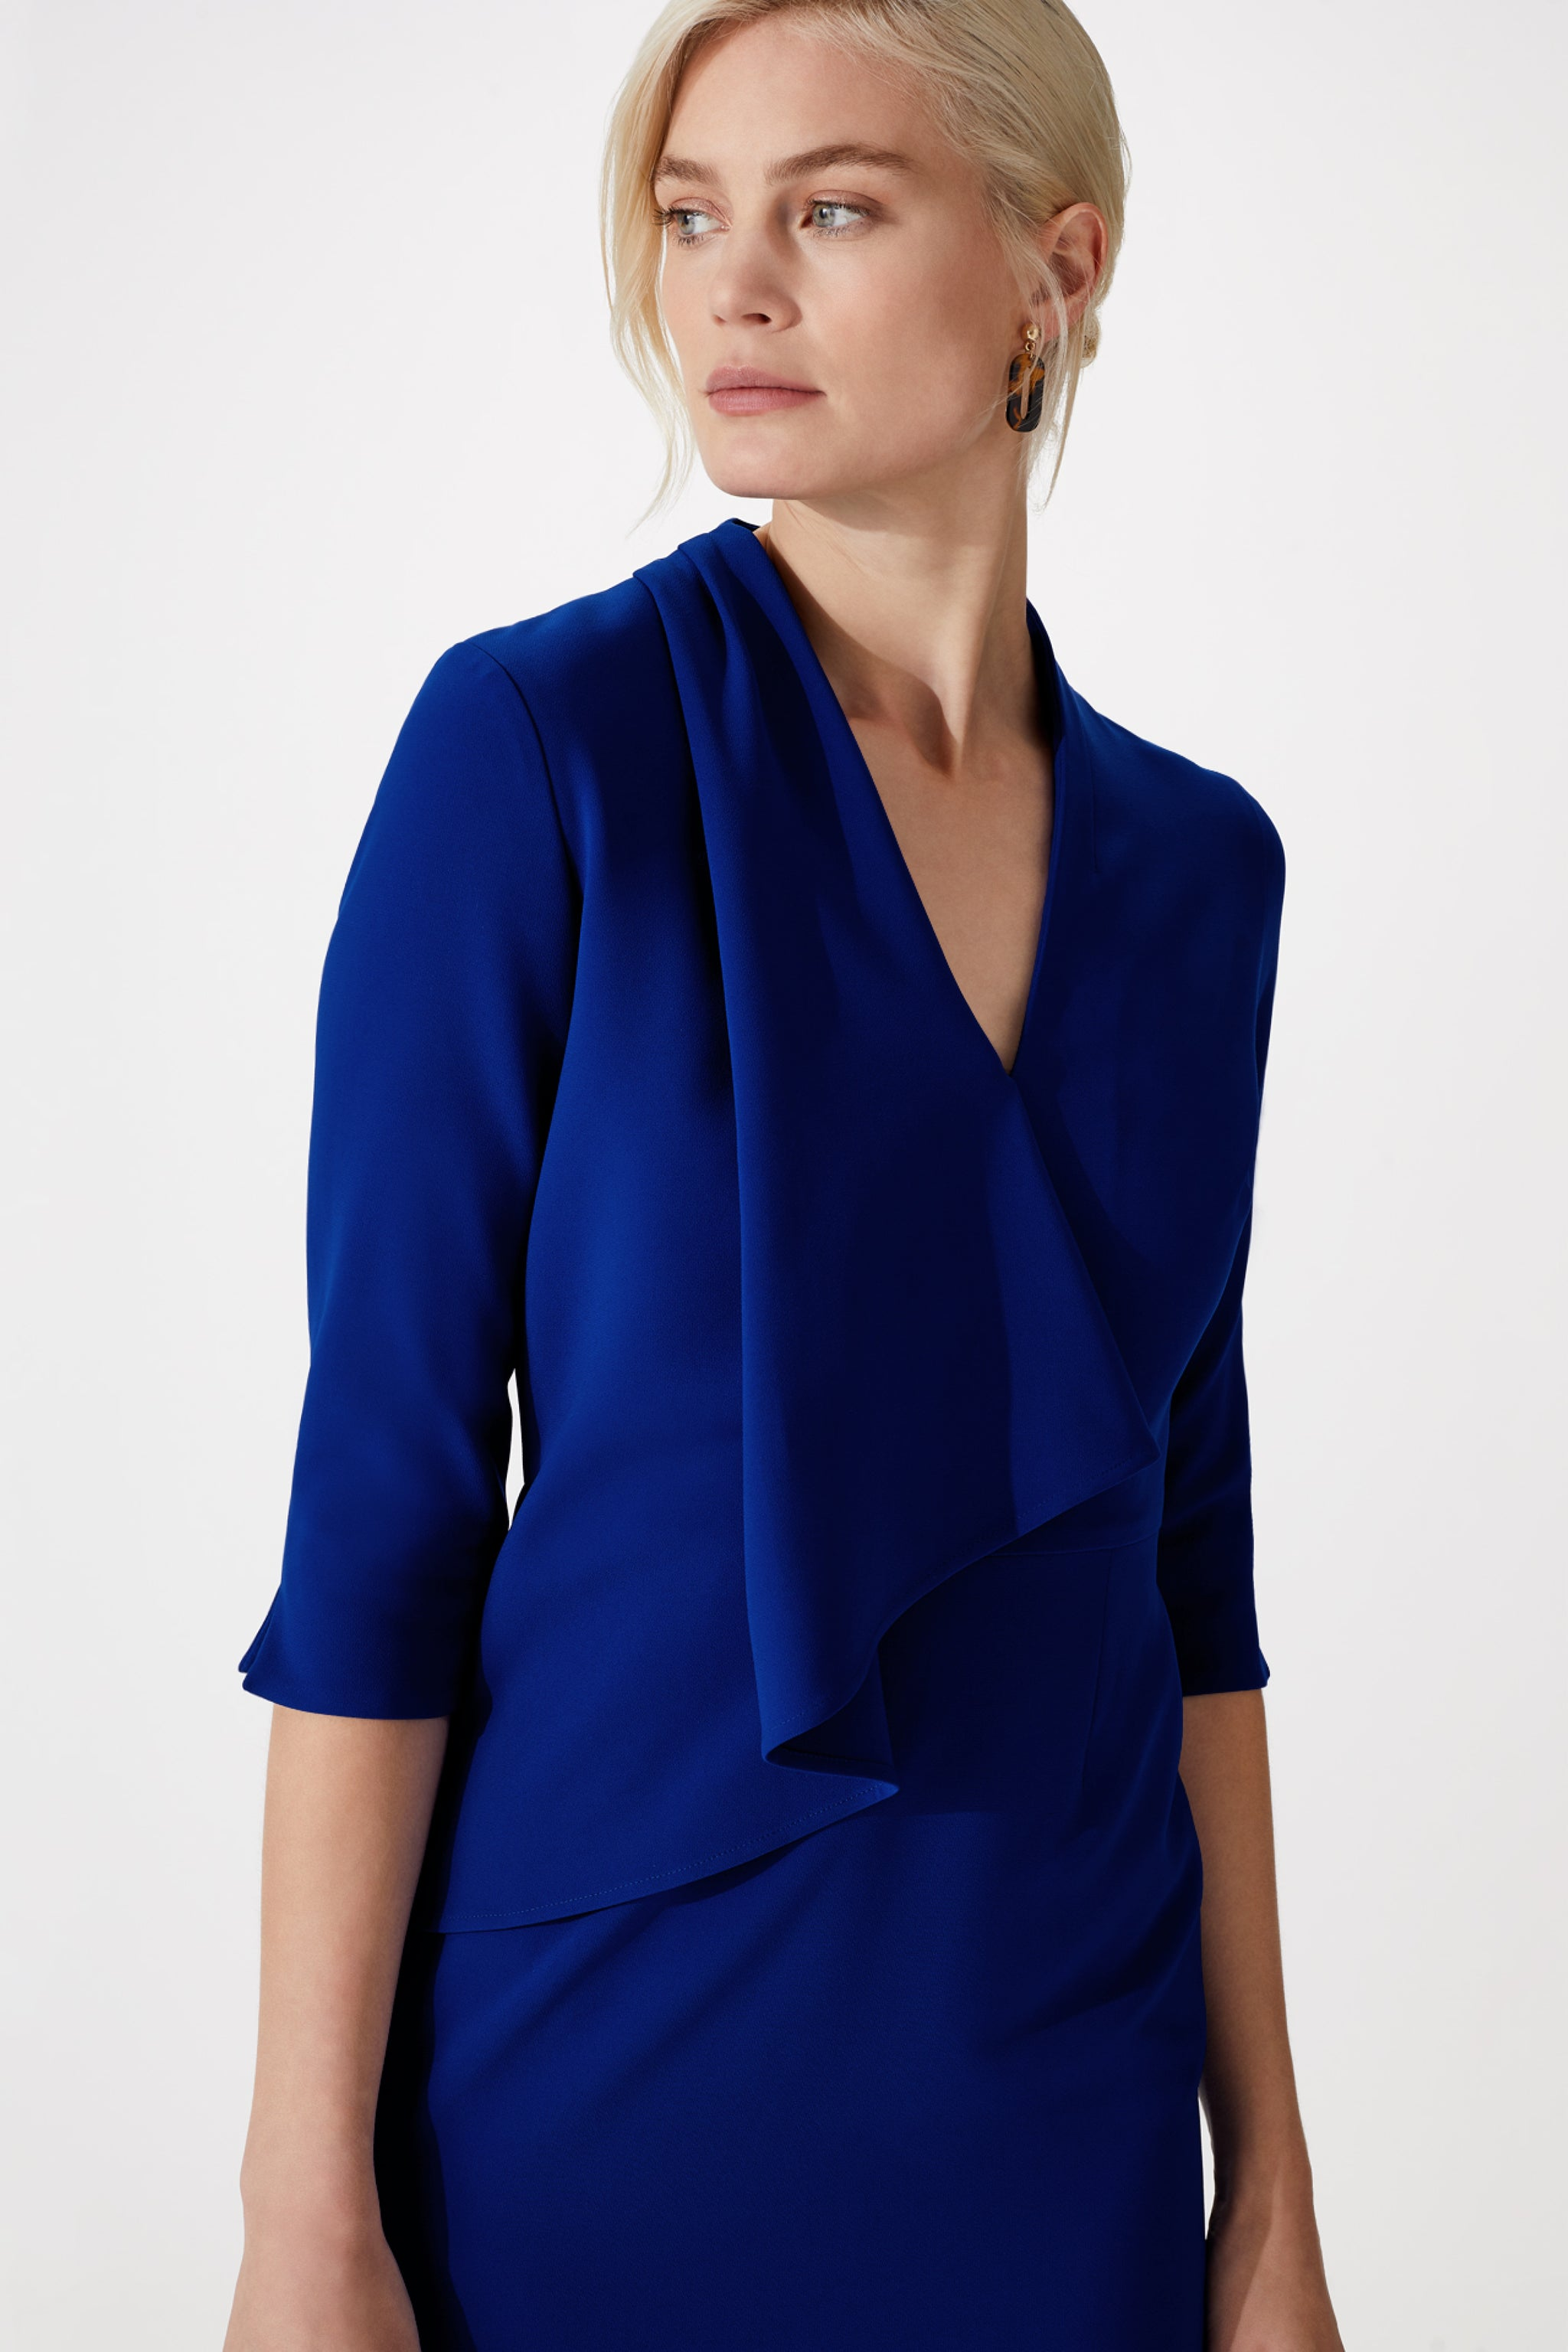 Highclere Cobalt Dress